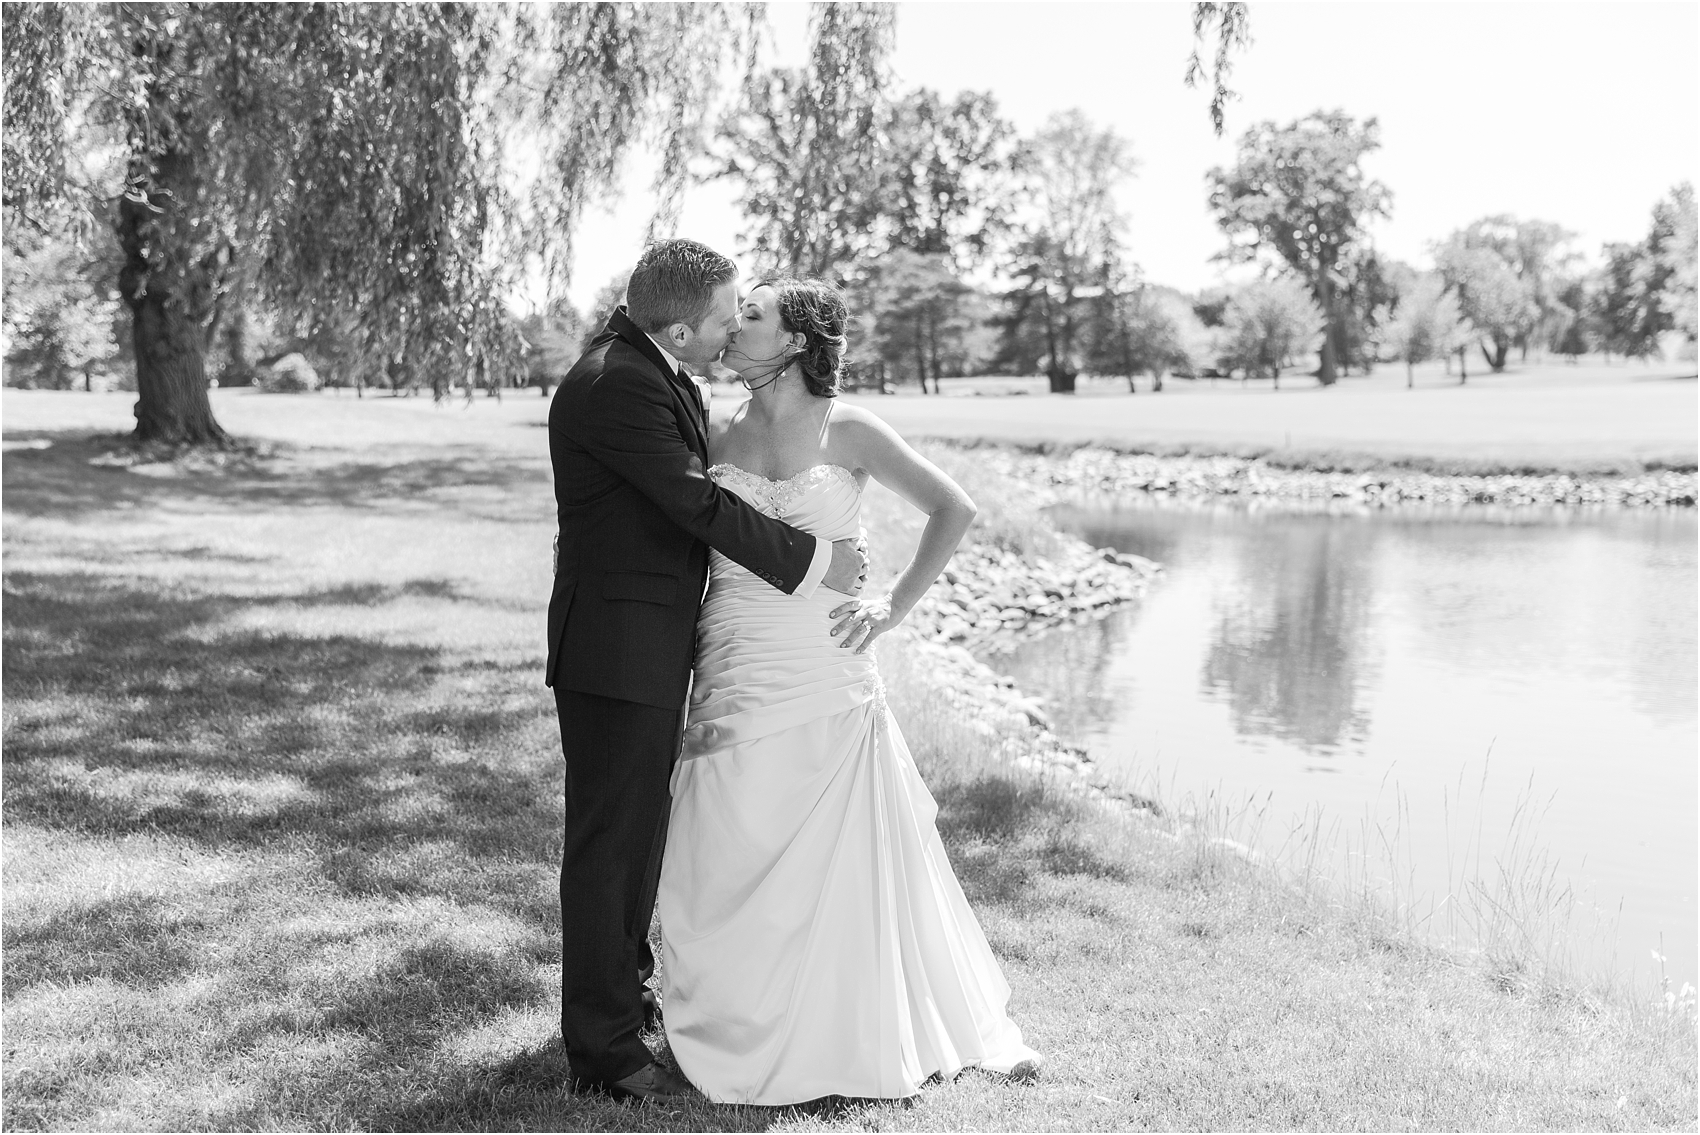 classic-wedding-photos-at-great-oaks-country-club-in-rochester-hills-mi-by-courtney-carolyn-photography_0061.jpg